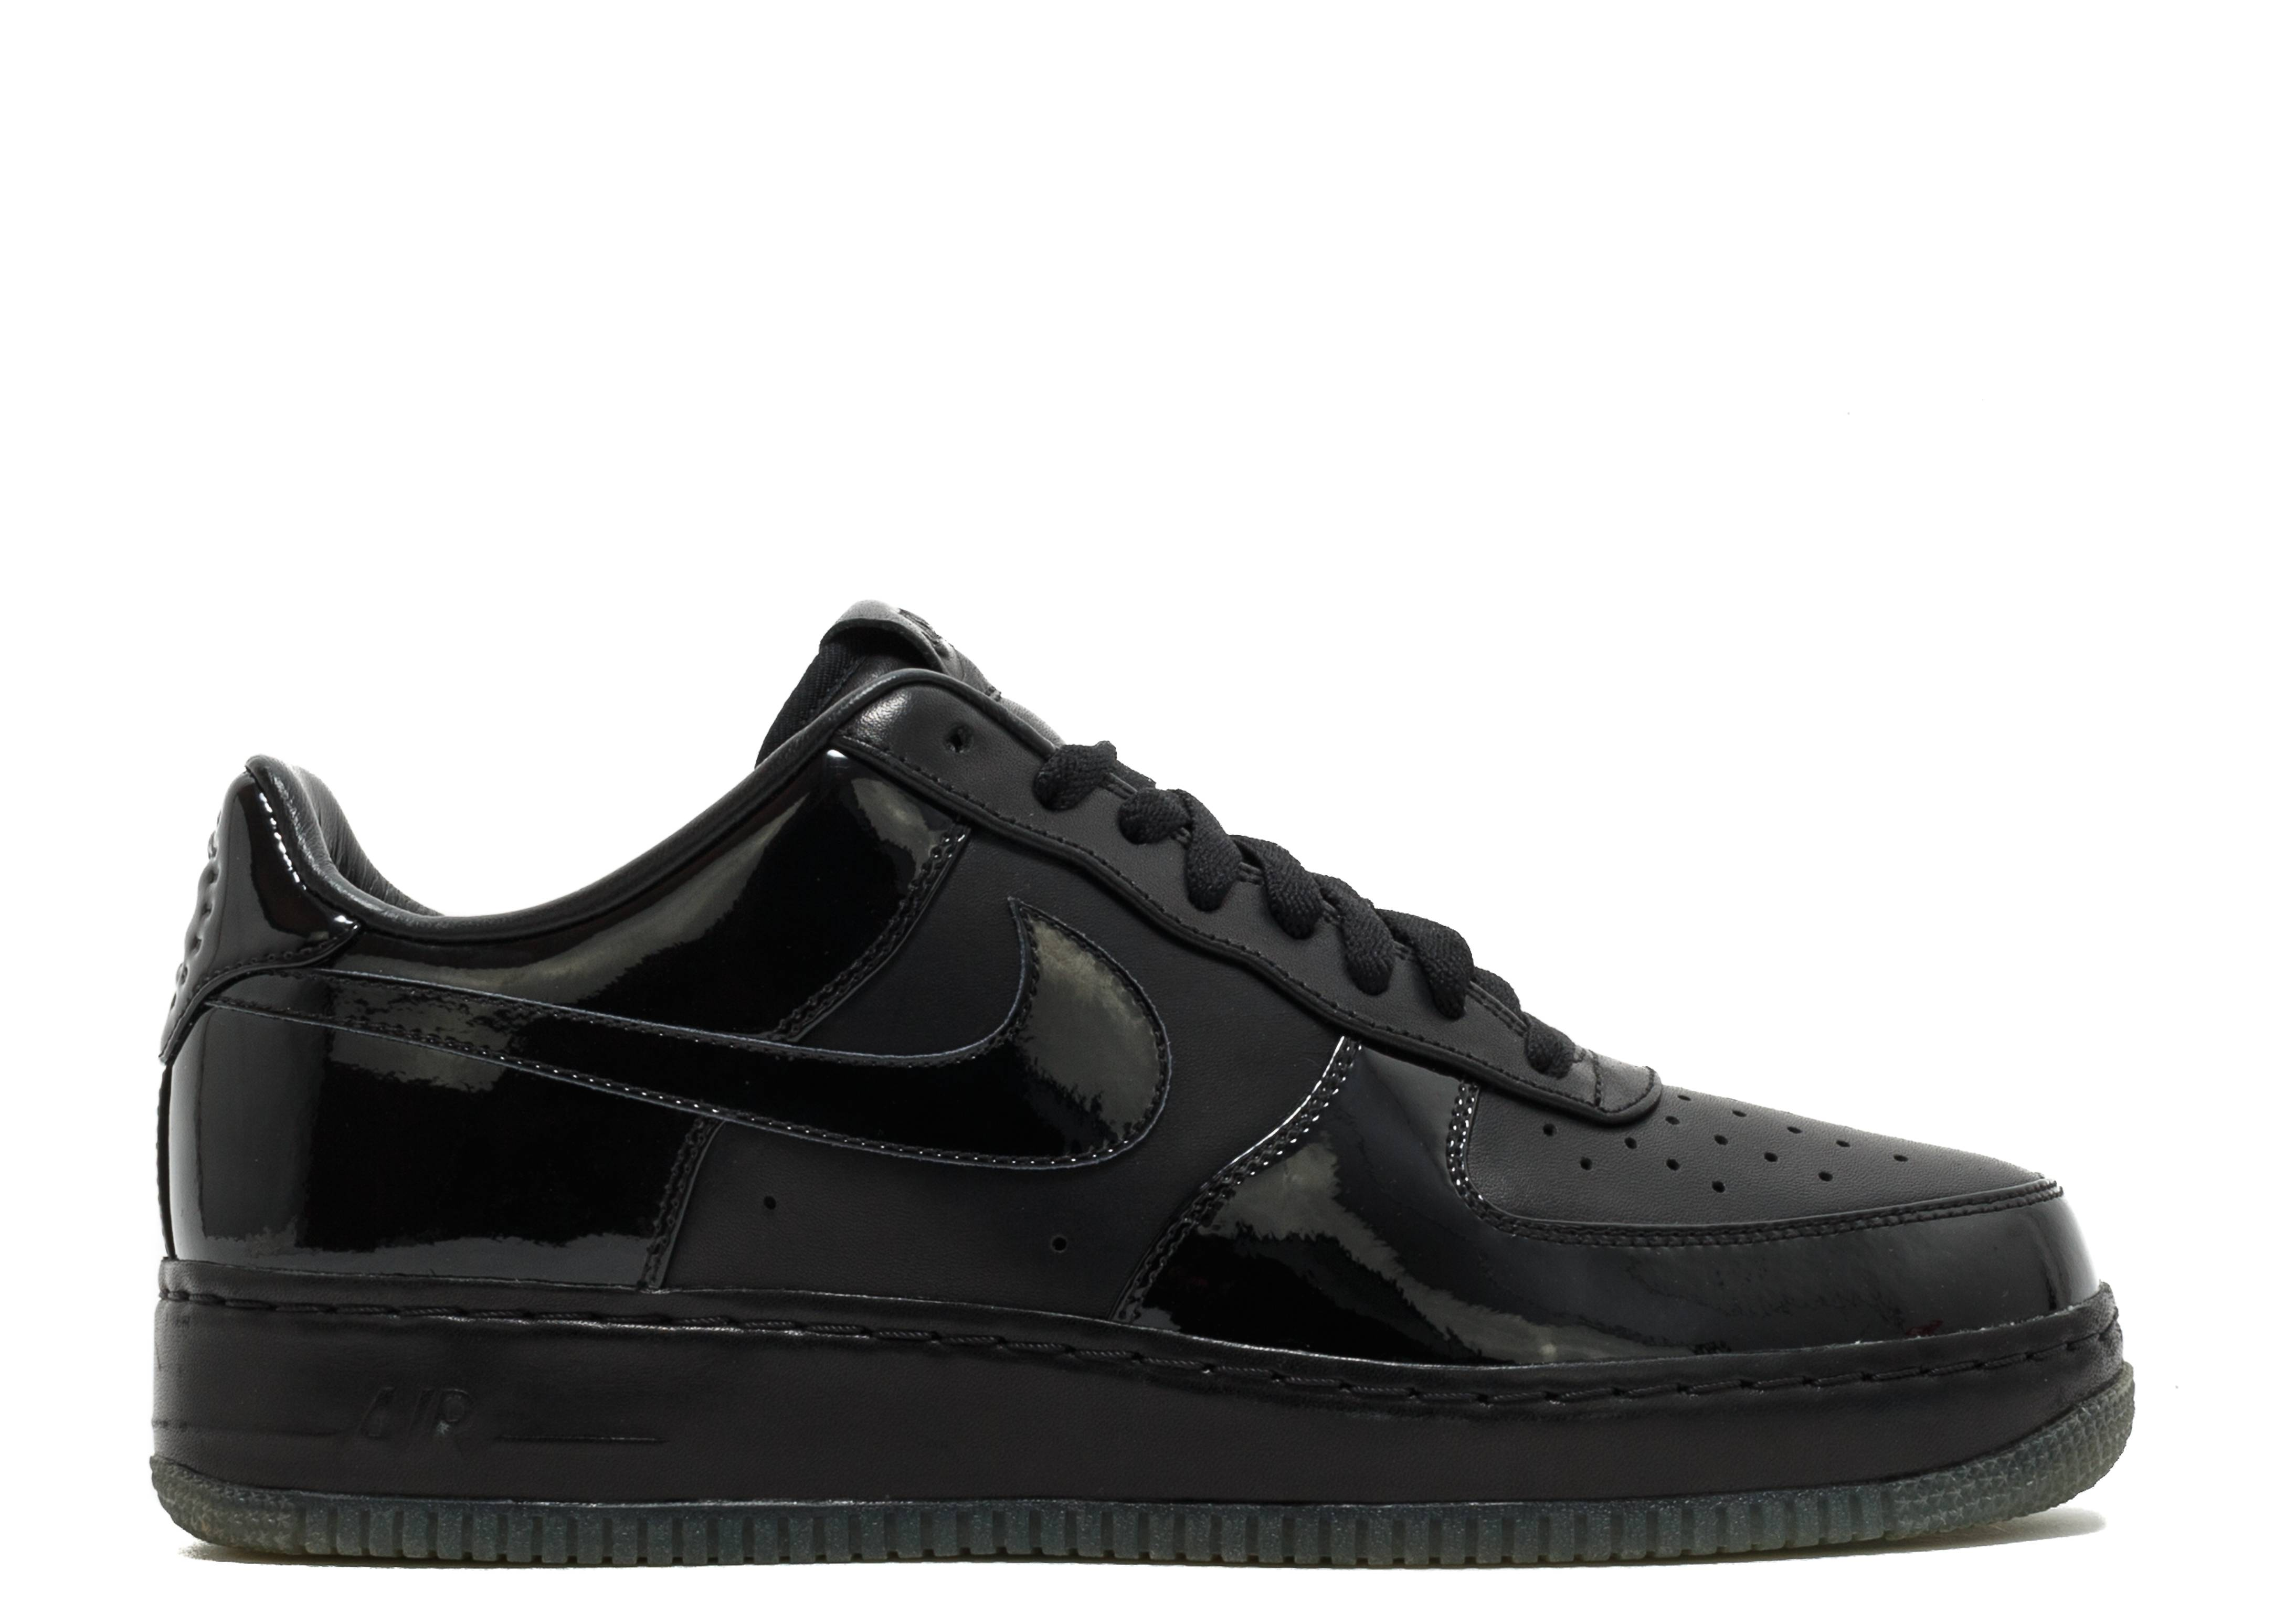 """Nike Air Force One Sprm """"jay-z """"All Black Everything"""""""""""